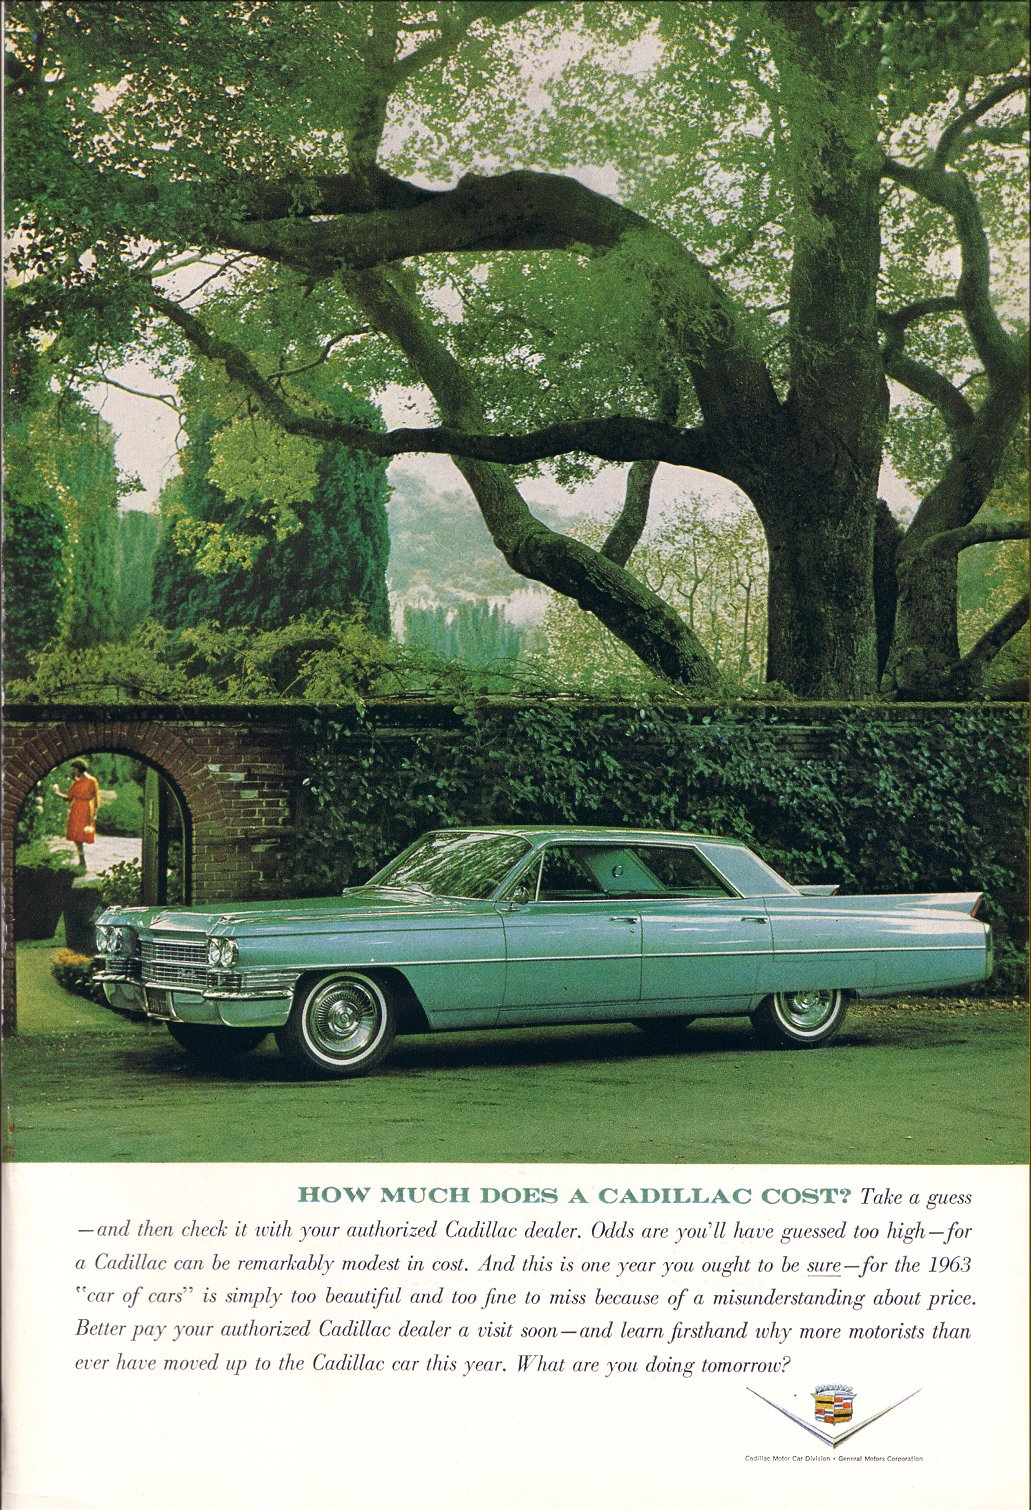 communicating class cadillac ads from the 1960s sociological images. Black Bedroom Furniture Sets. Home Design Ideas